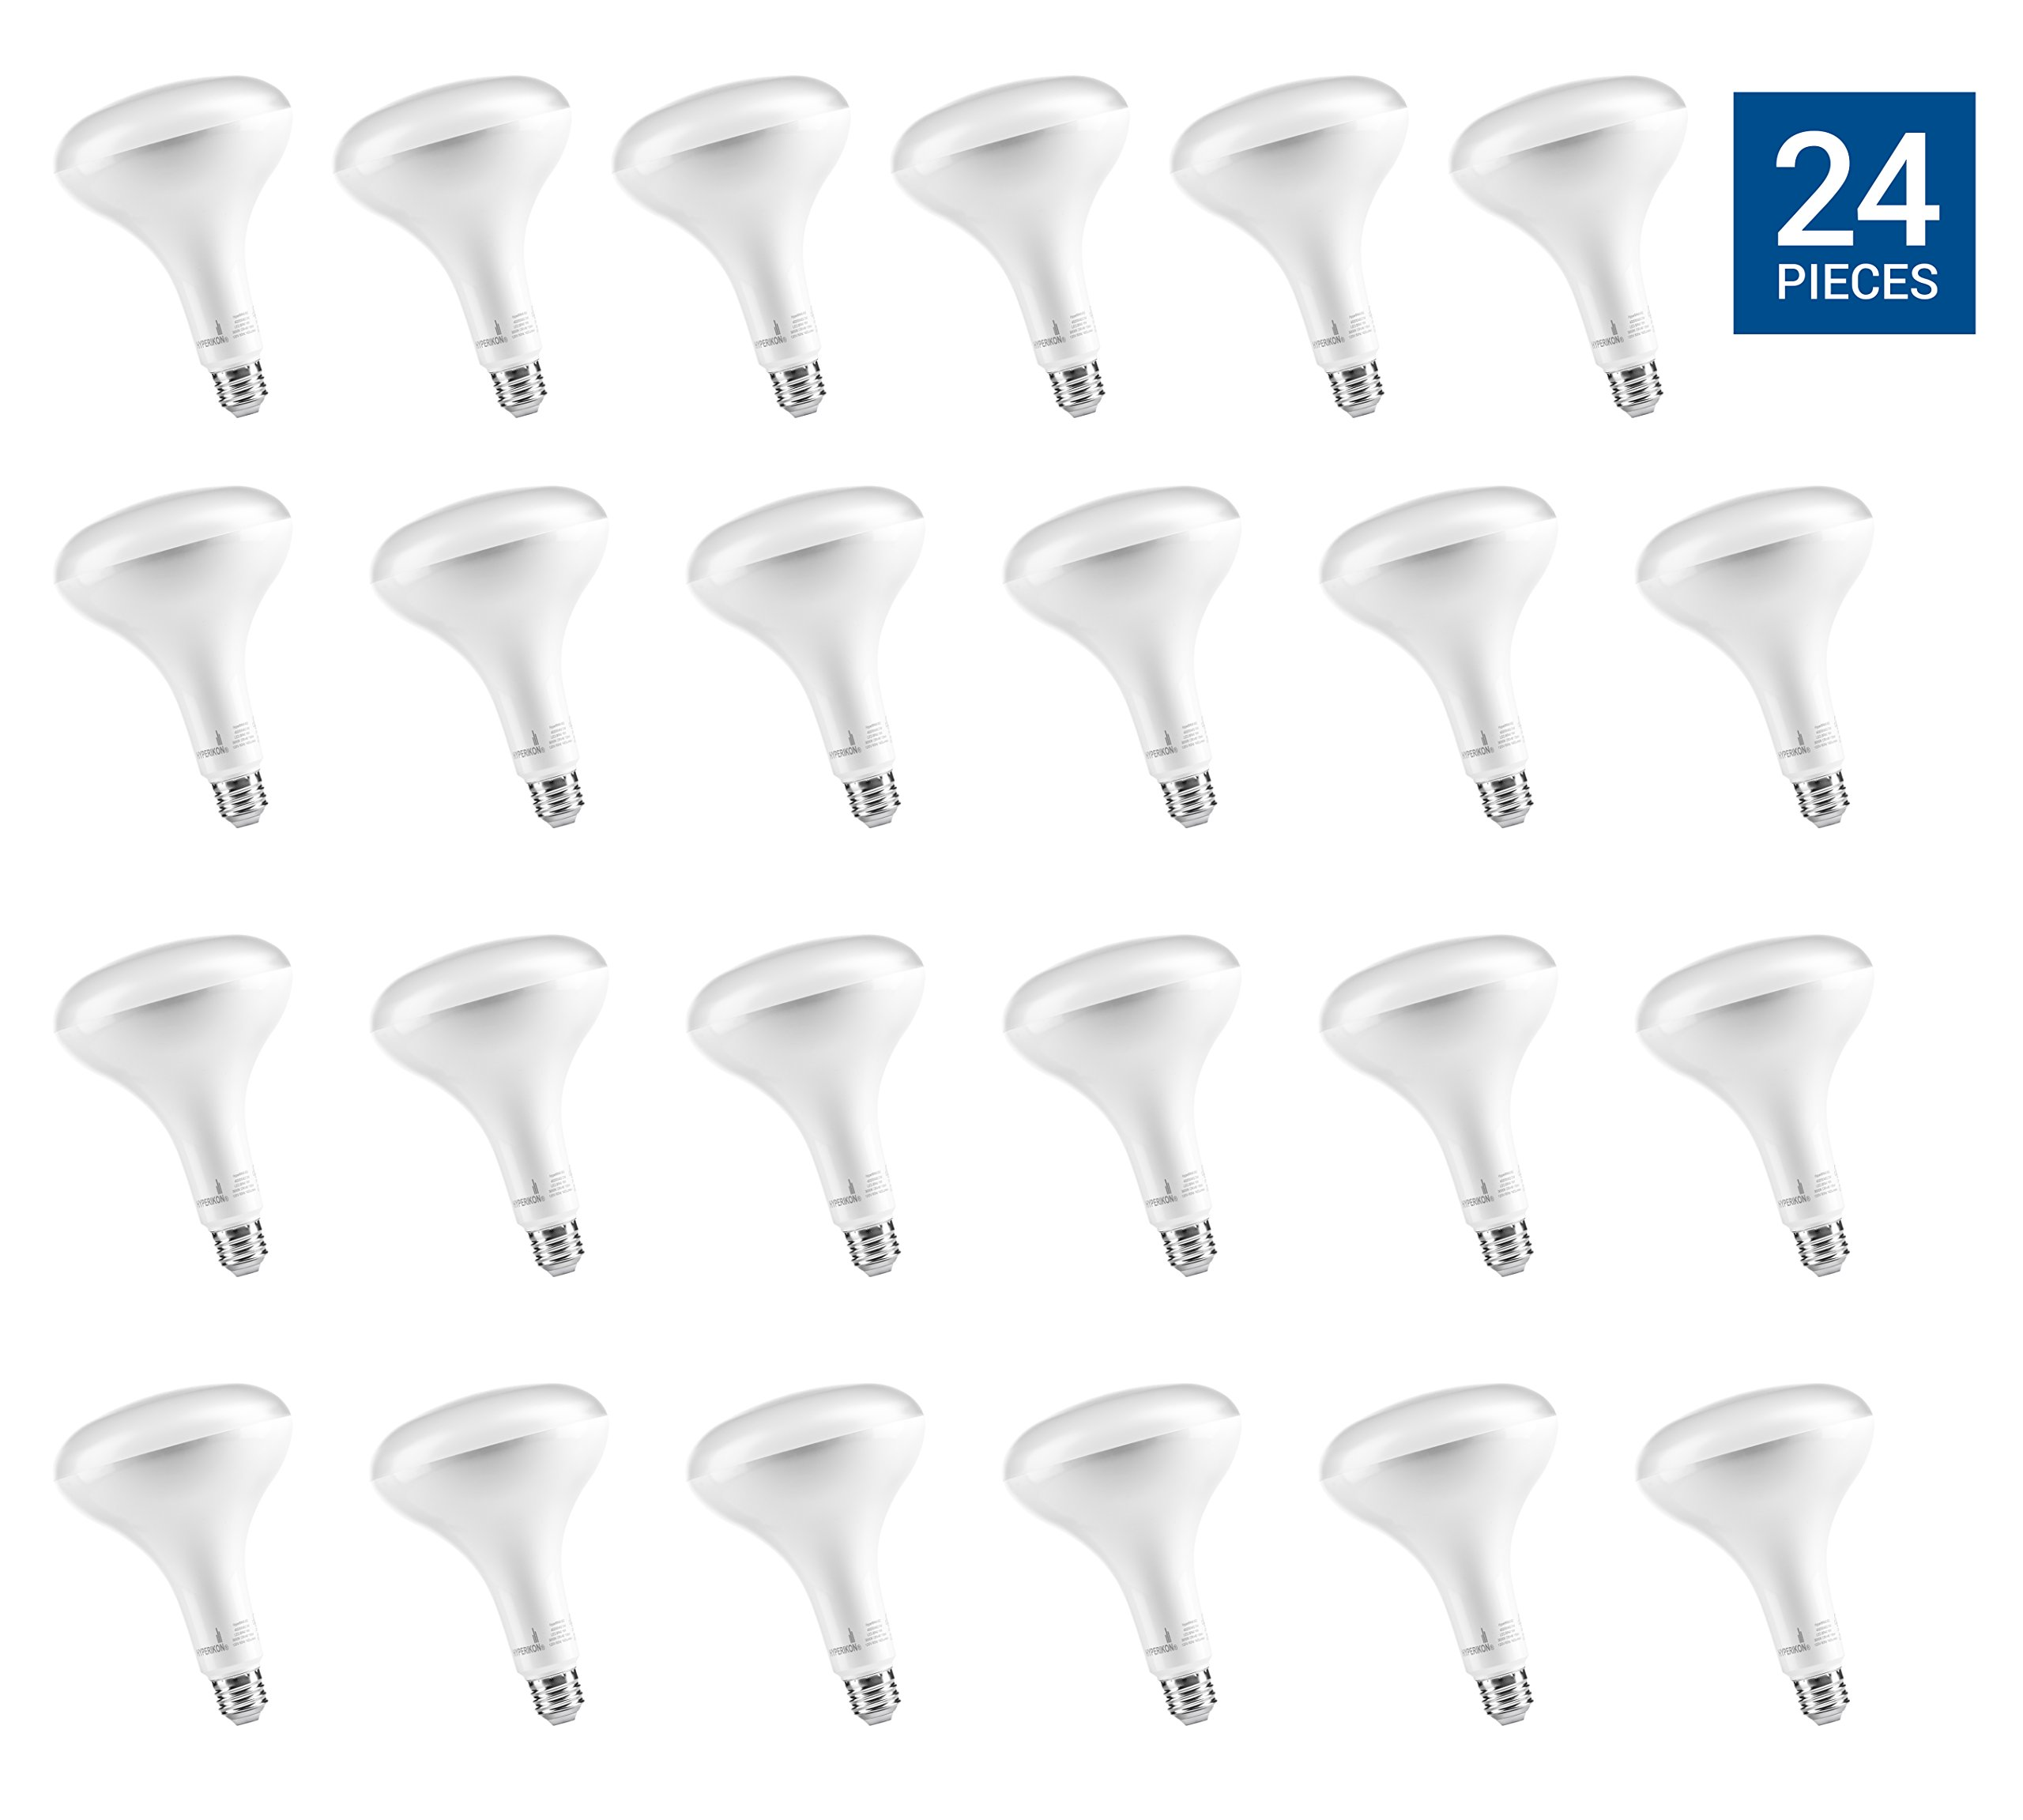 Hyperikon Vantage BR40 LED Bulb, 15W (100W Equivalent), 1340lm, 4000K (Daylight Glow), Dimmable, Flood Light Bulb, E26 Base, UL & ENERGY STAR - Great for Security Lights, Kitchen, Rooms (24 Pack)